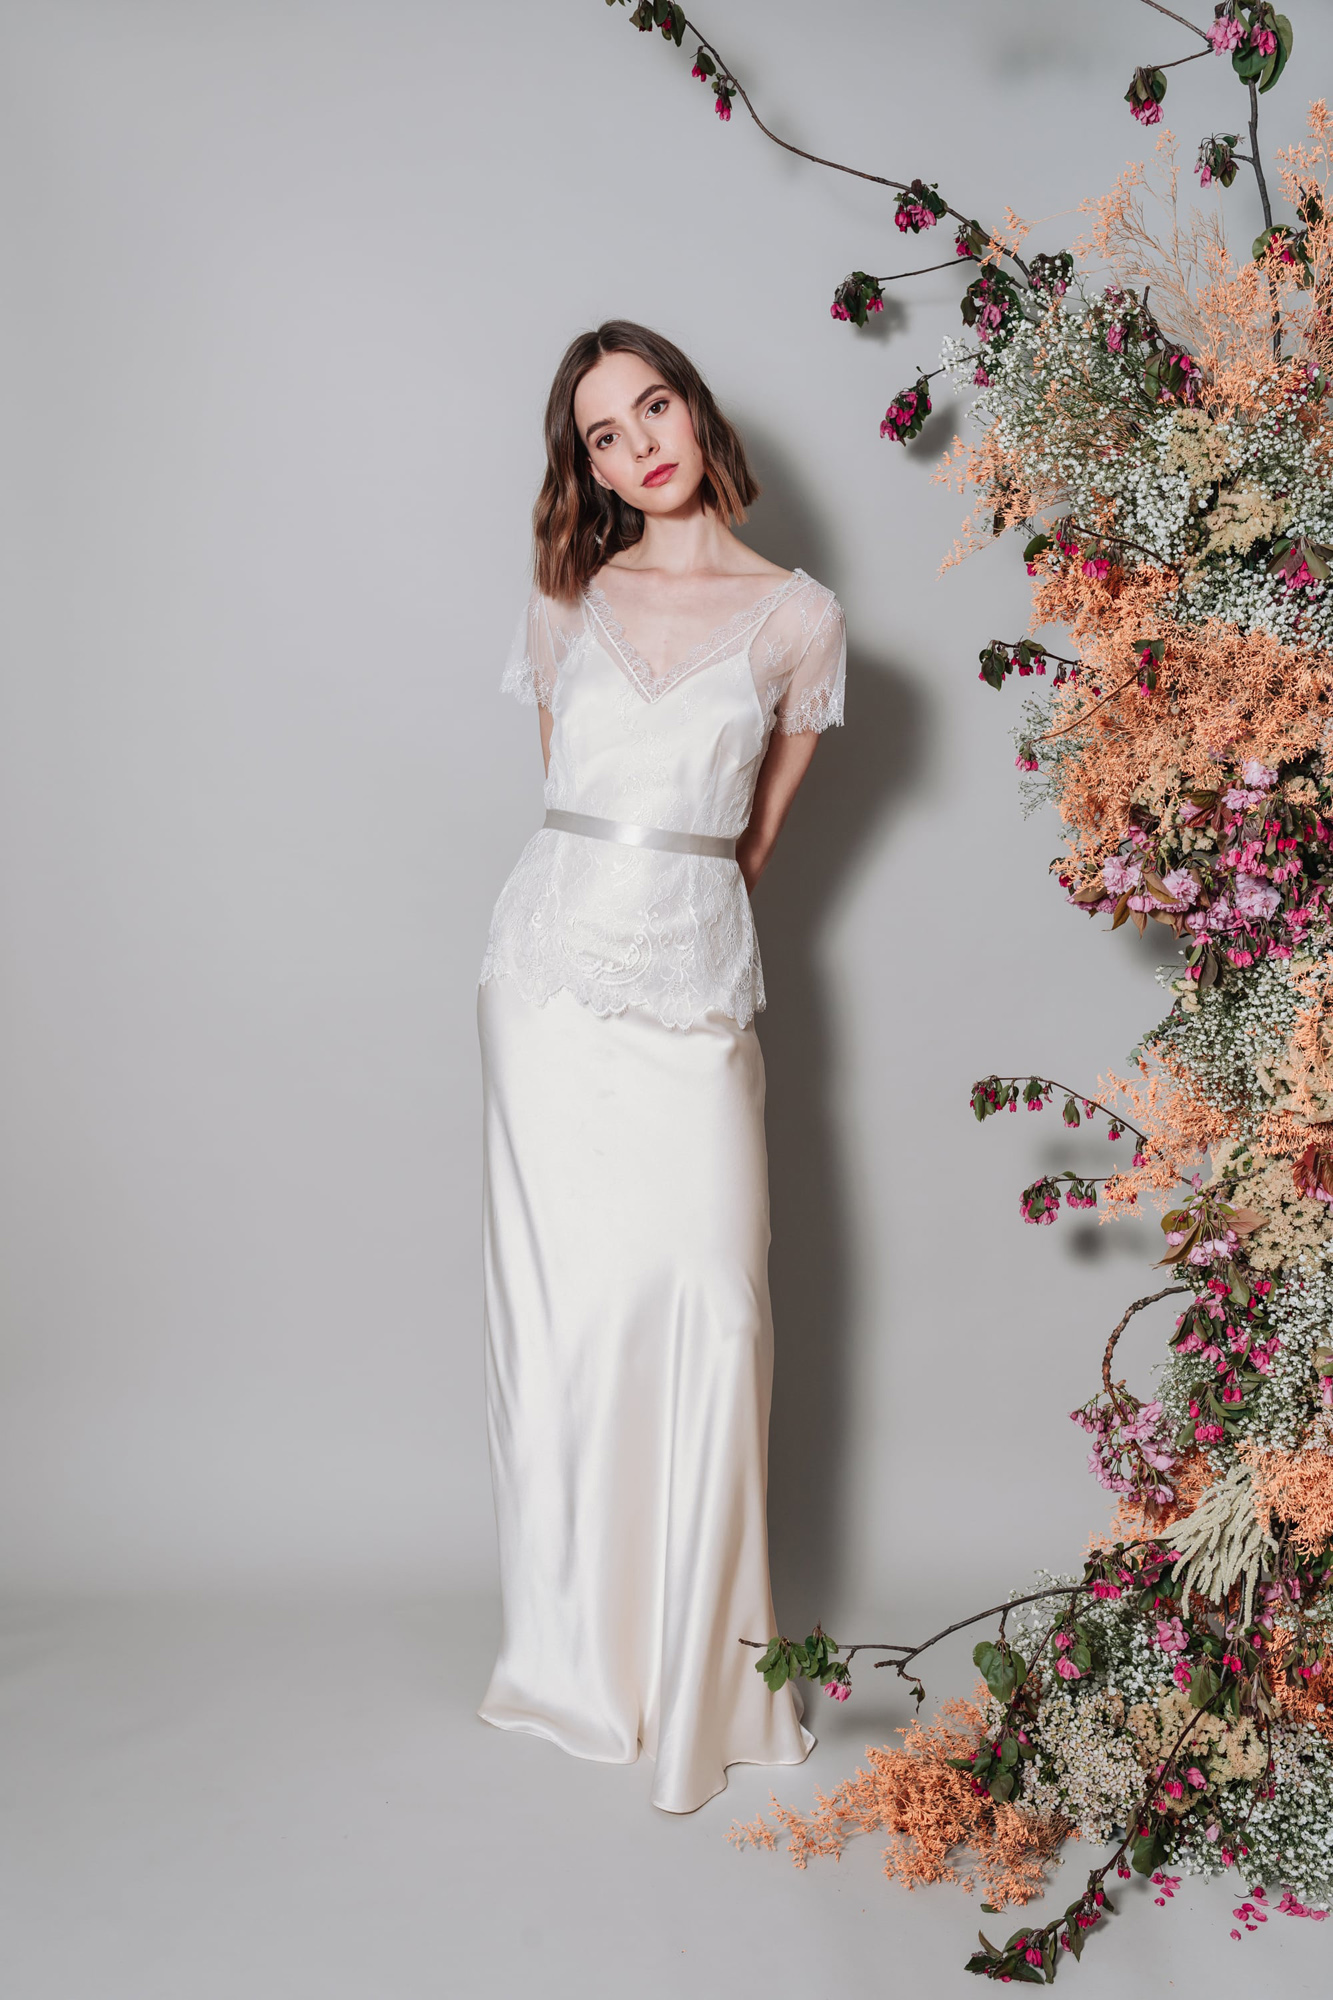 Kate-Beaumont-Sheffield-Lilac-Bridal-Separates-Lace-and-Silk-Wedding-Gown-2.jpg